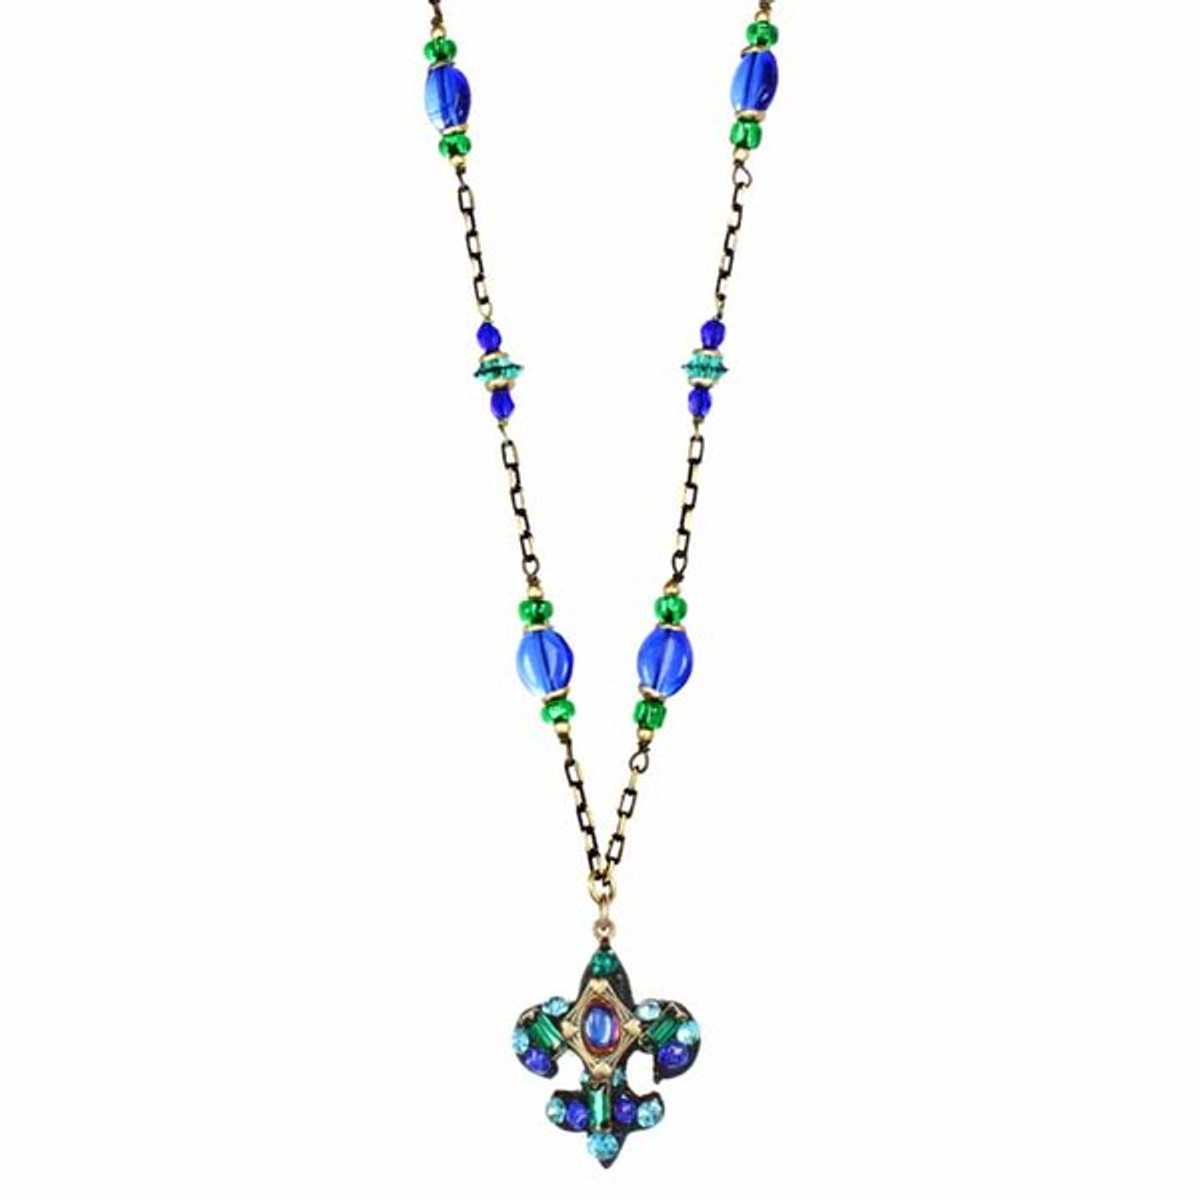 Peacock Necklace By Michal Golan - N3276